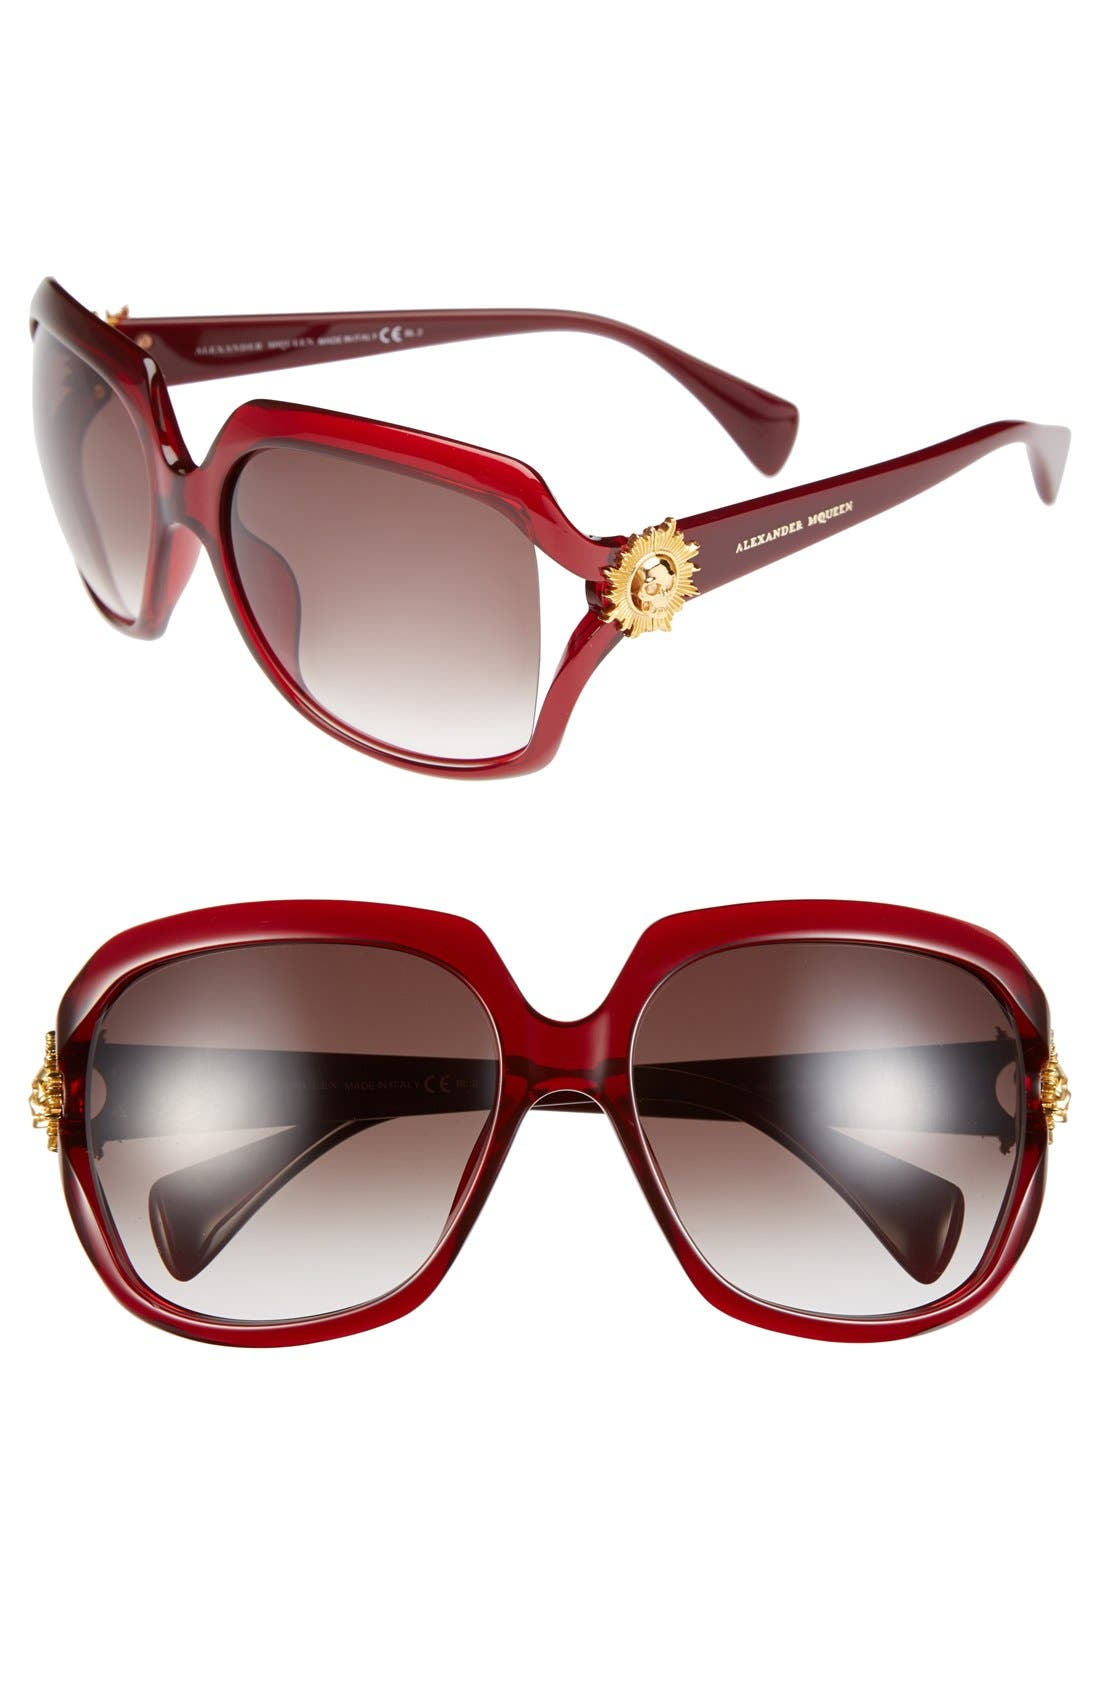 Alternate Image 1 Selected - Alexander McQueen 59mm Sunglasses